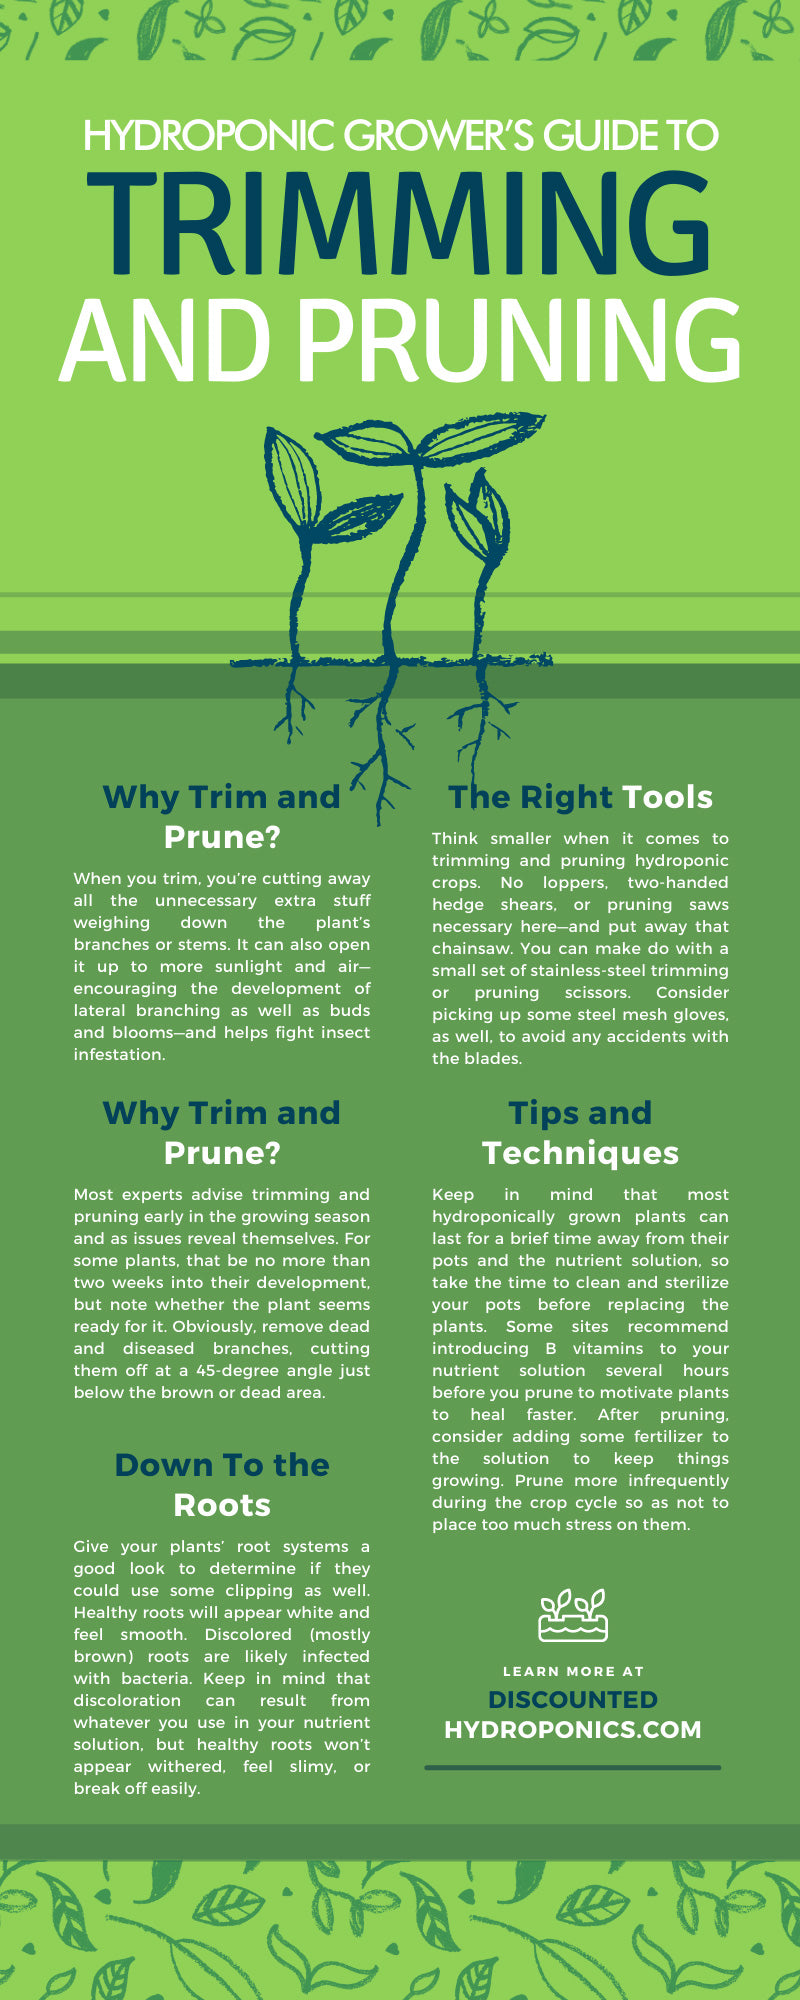 Hydroponic Grower's Guide to Trimming and Pruning